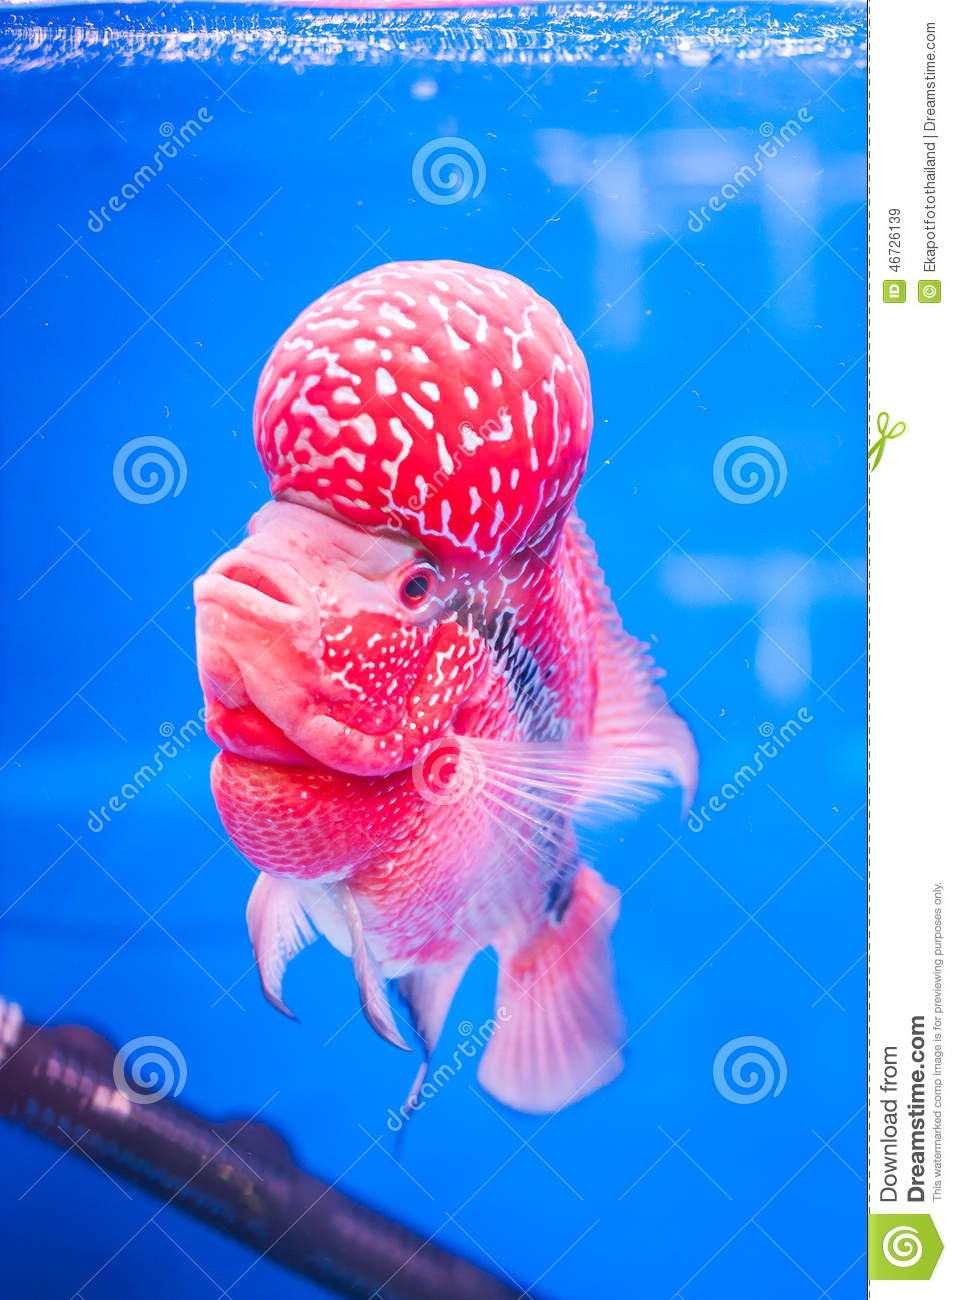 Flowerhorn fish stock photo image 46726139 for Flower horn fish price